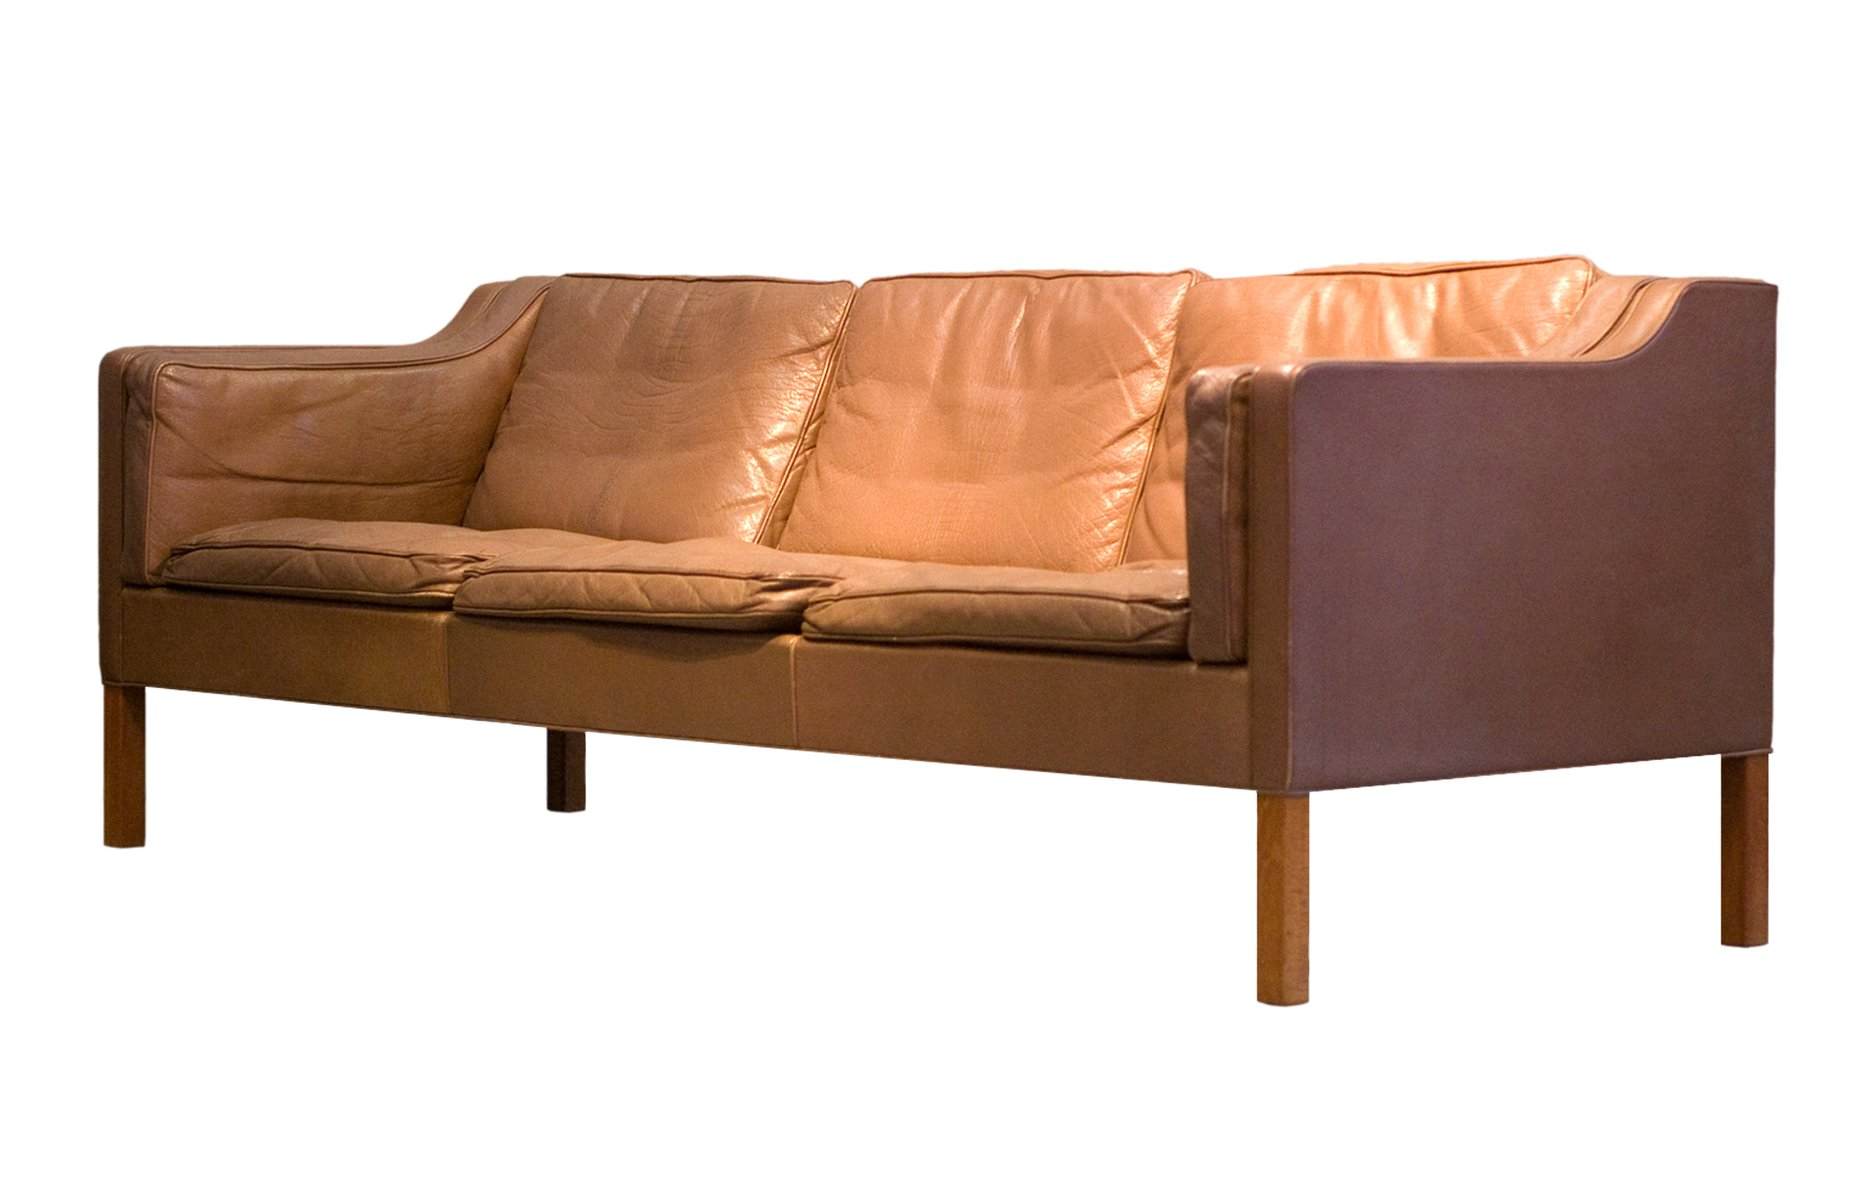 Mid Century Model 2213 Brown 3 Seater Leather Sofa By Børge Mogensen For Fredericia 1977 At Pamono